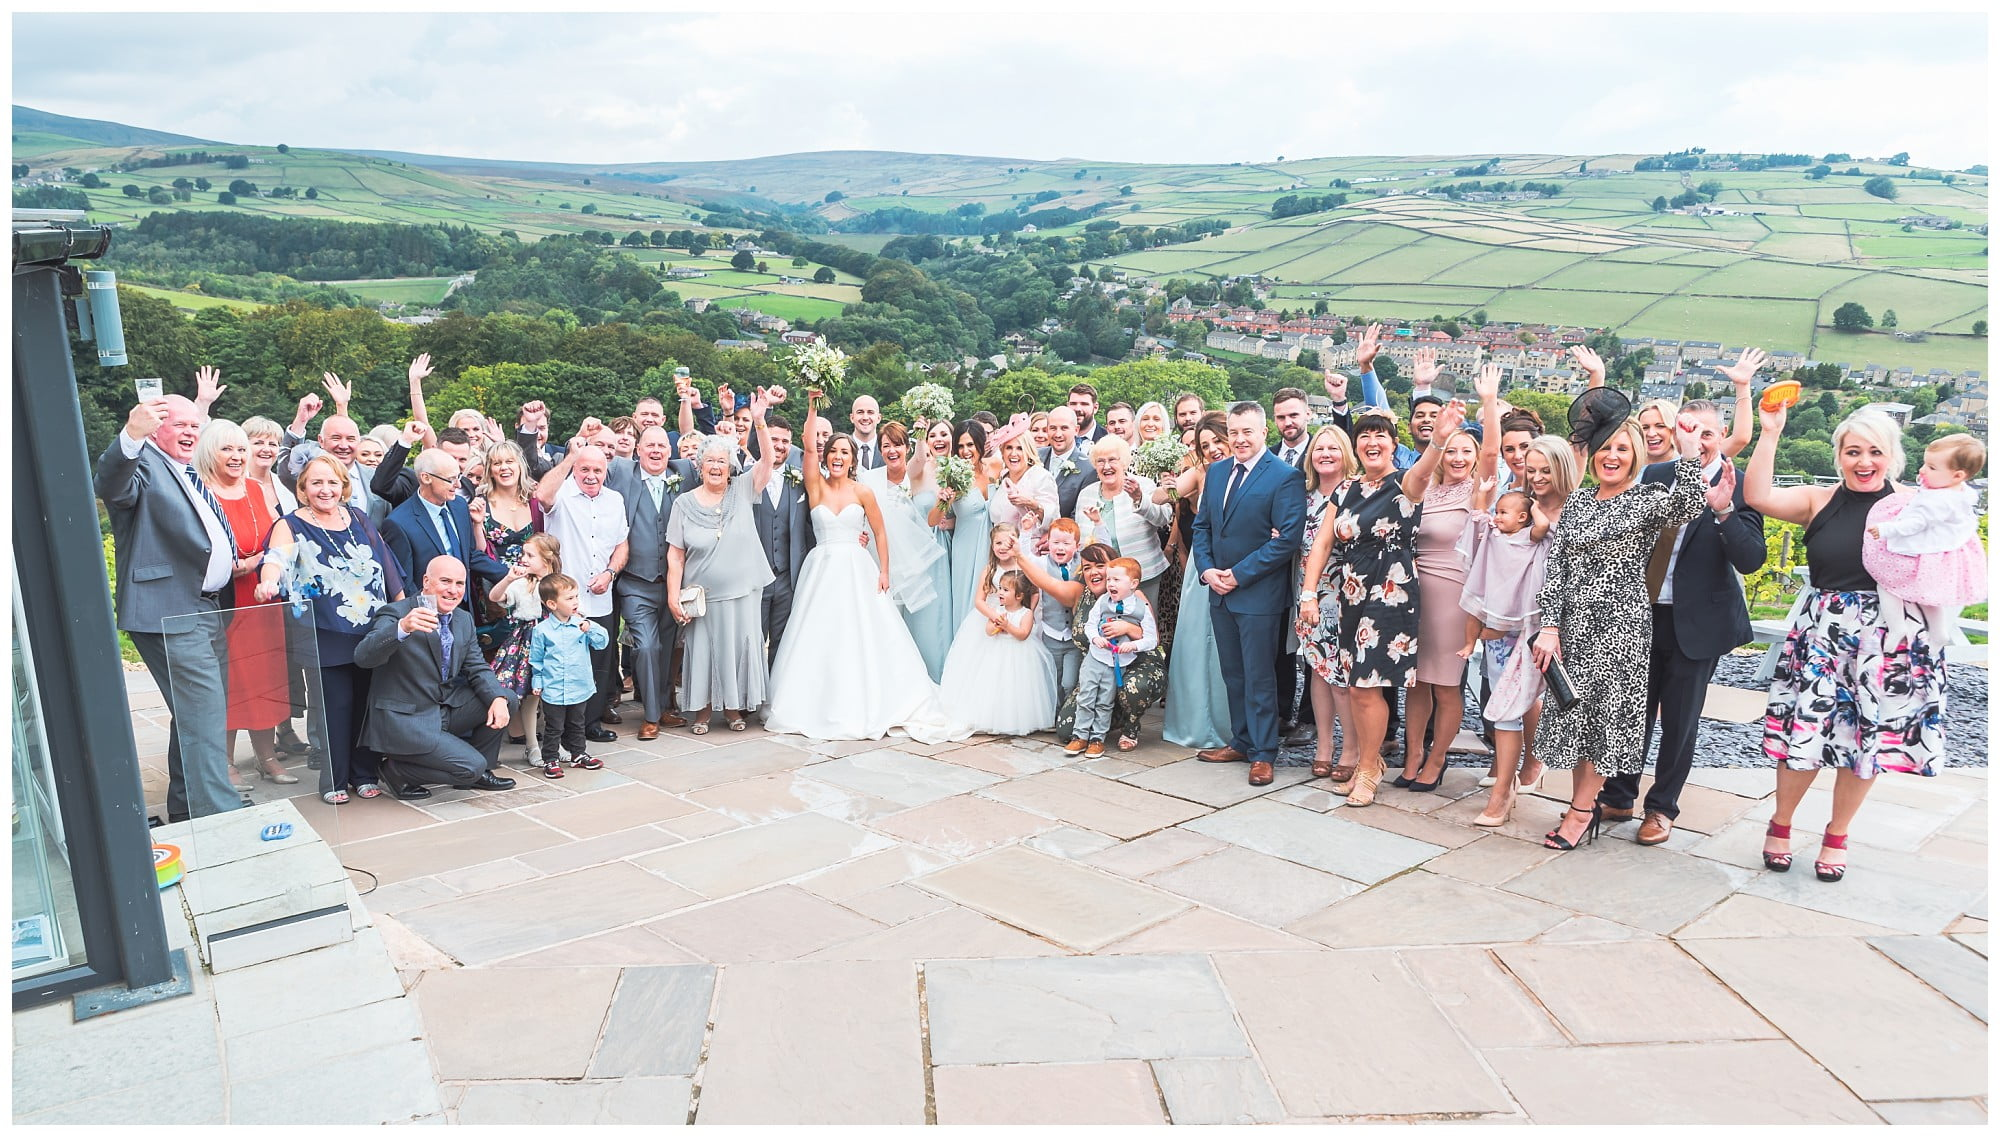 Wedding guest Group shot from the top of the vineyard looking out to the hills - Holmfirth vineyard